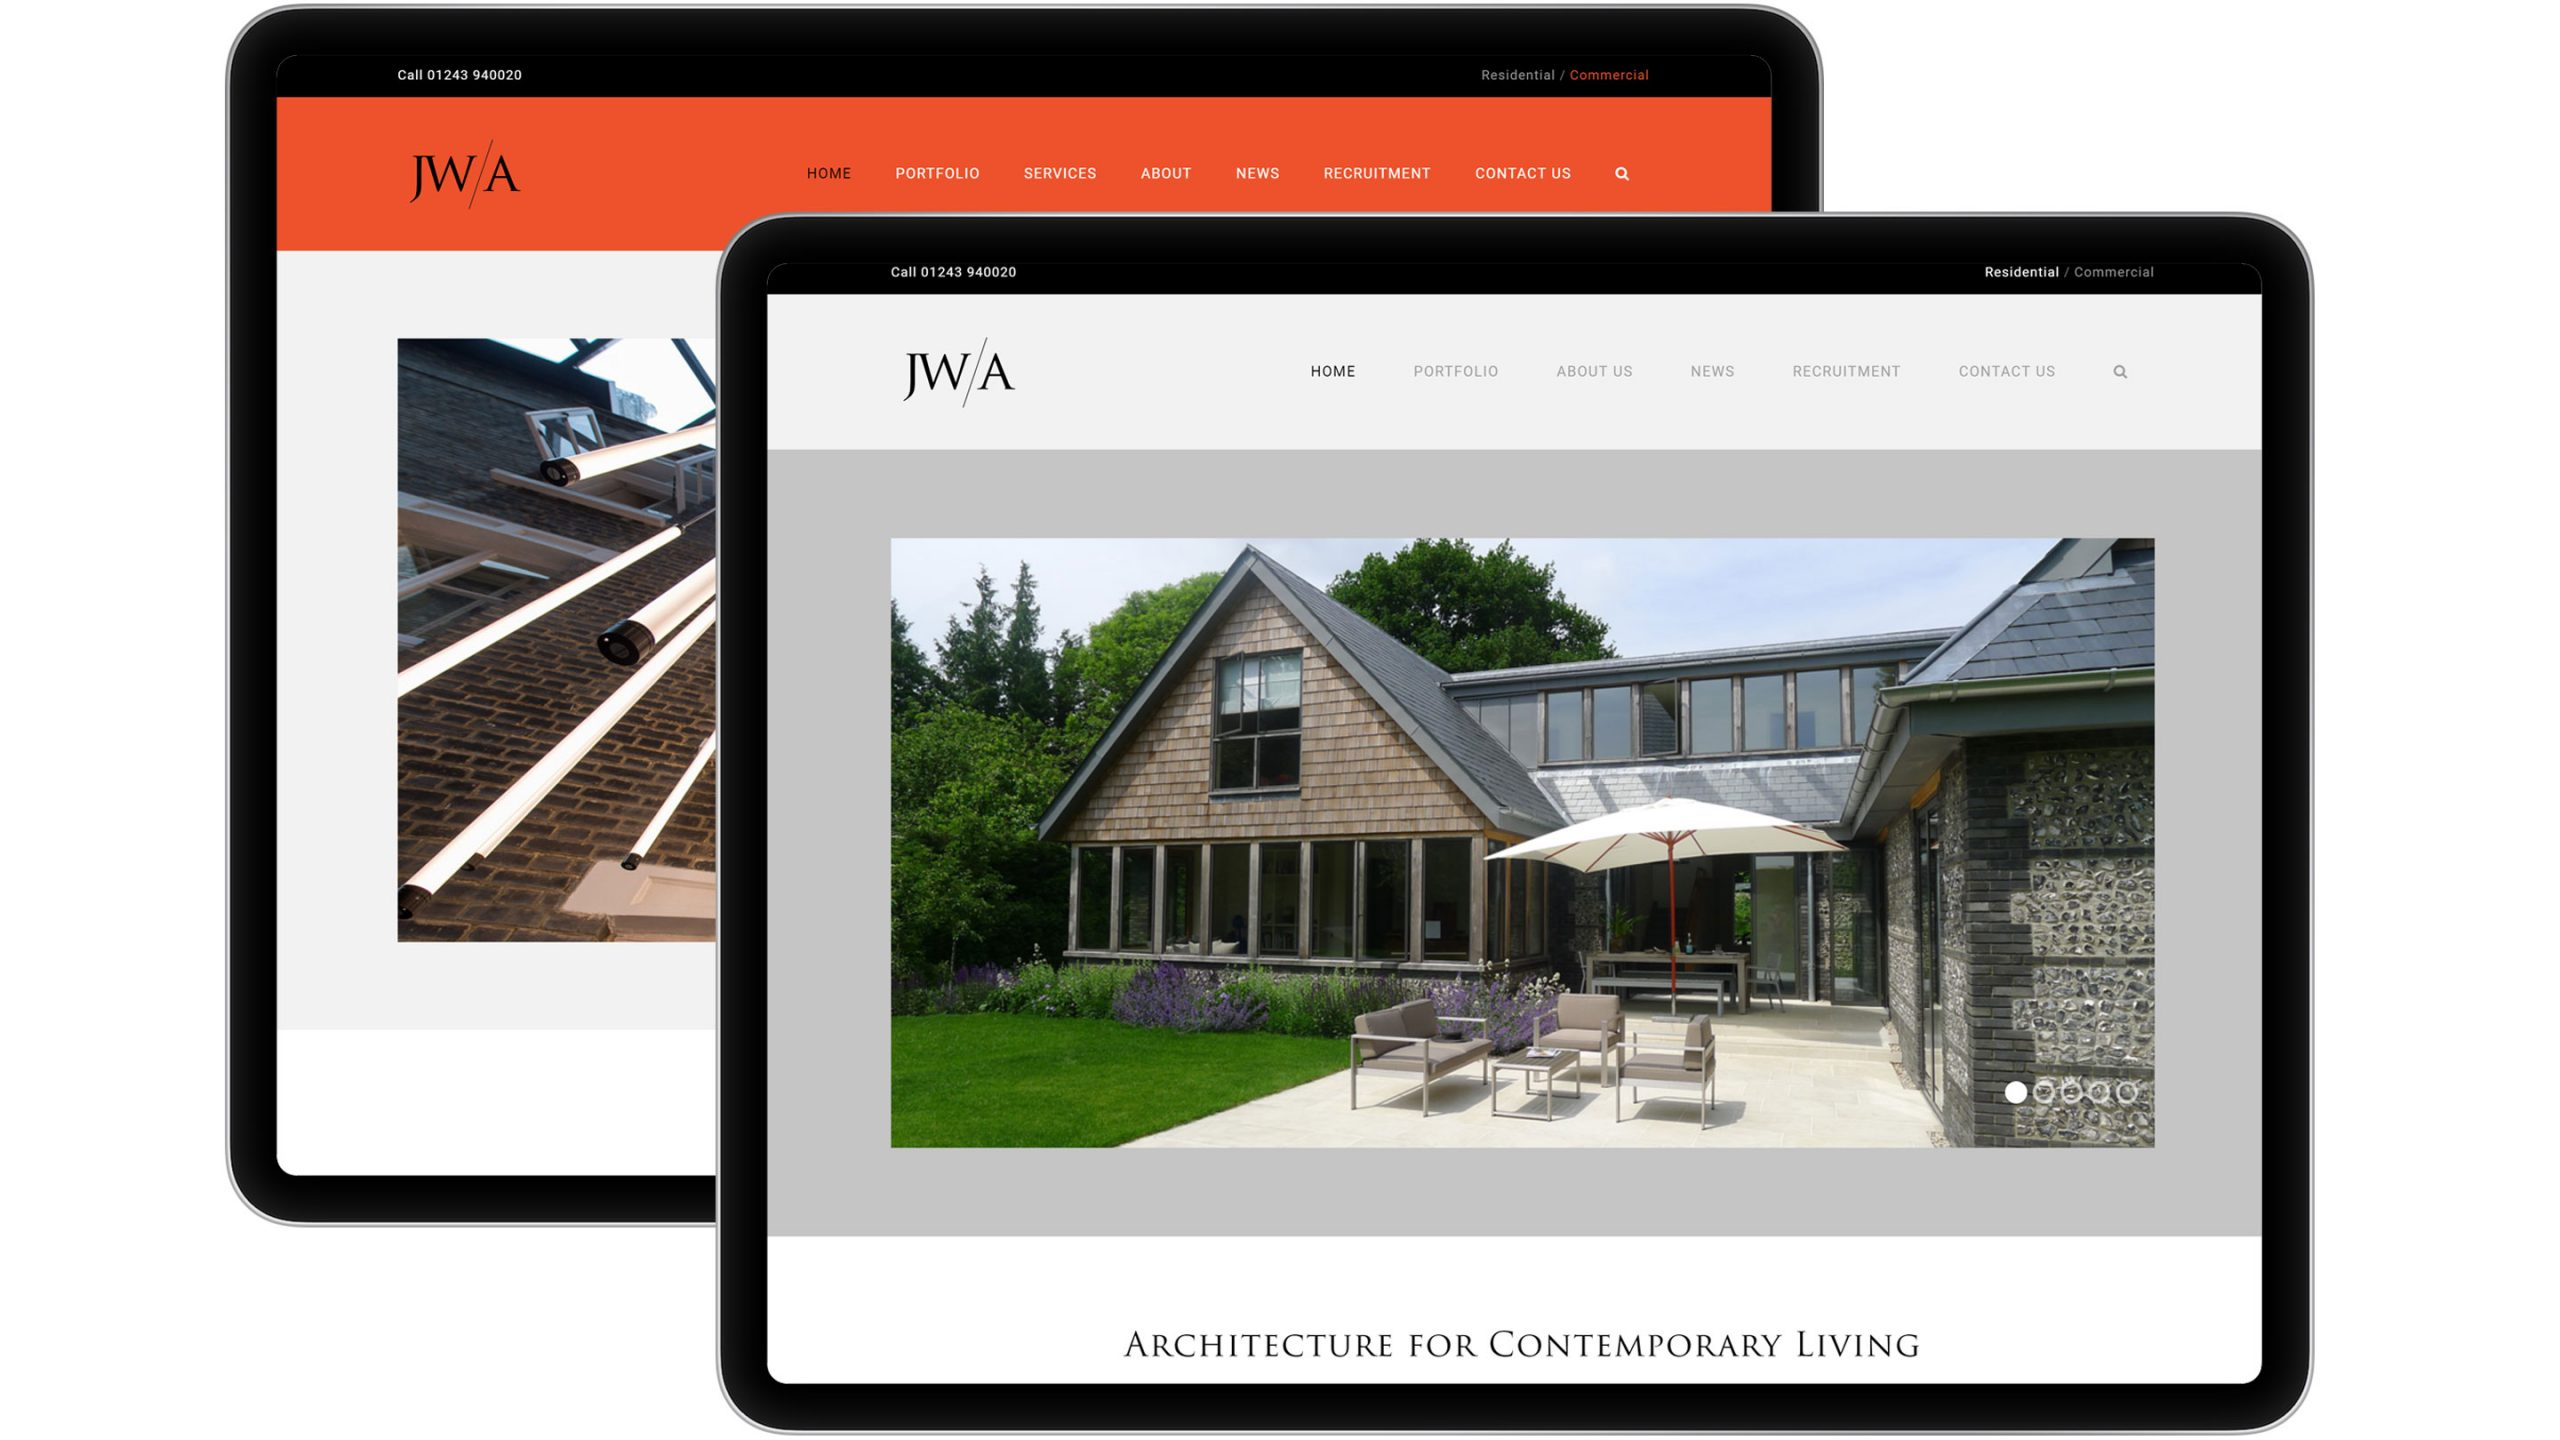 james wells architects and commecial on ipad tablets